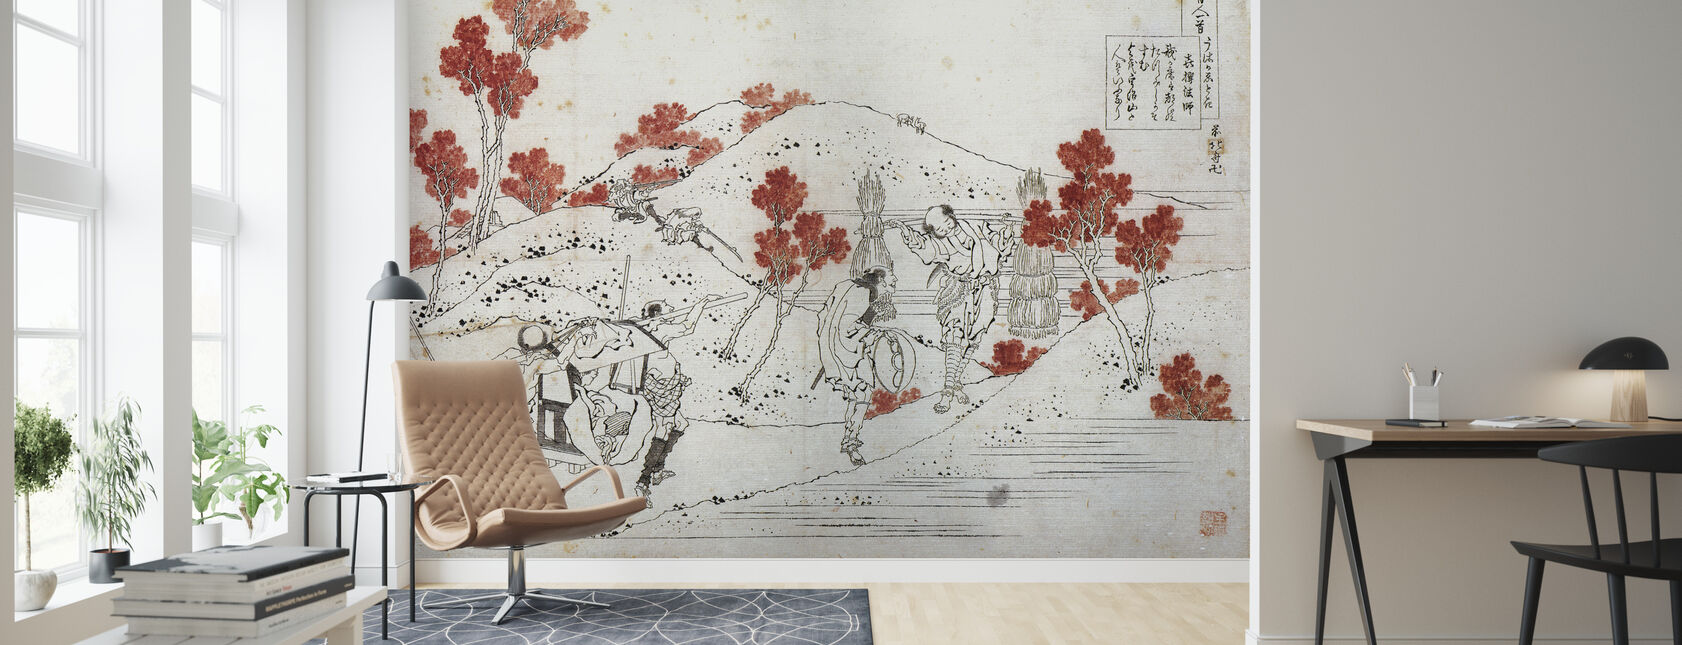 Porters Carry a Palanquin, Katsushika Hokusai - Wallpaper - Living Room